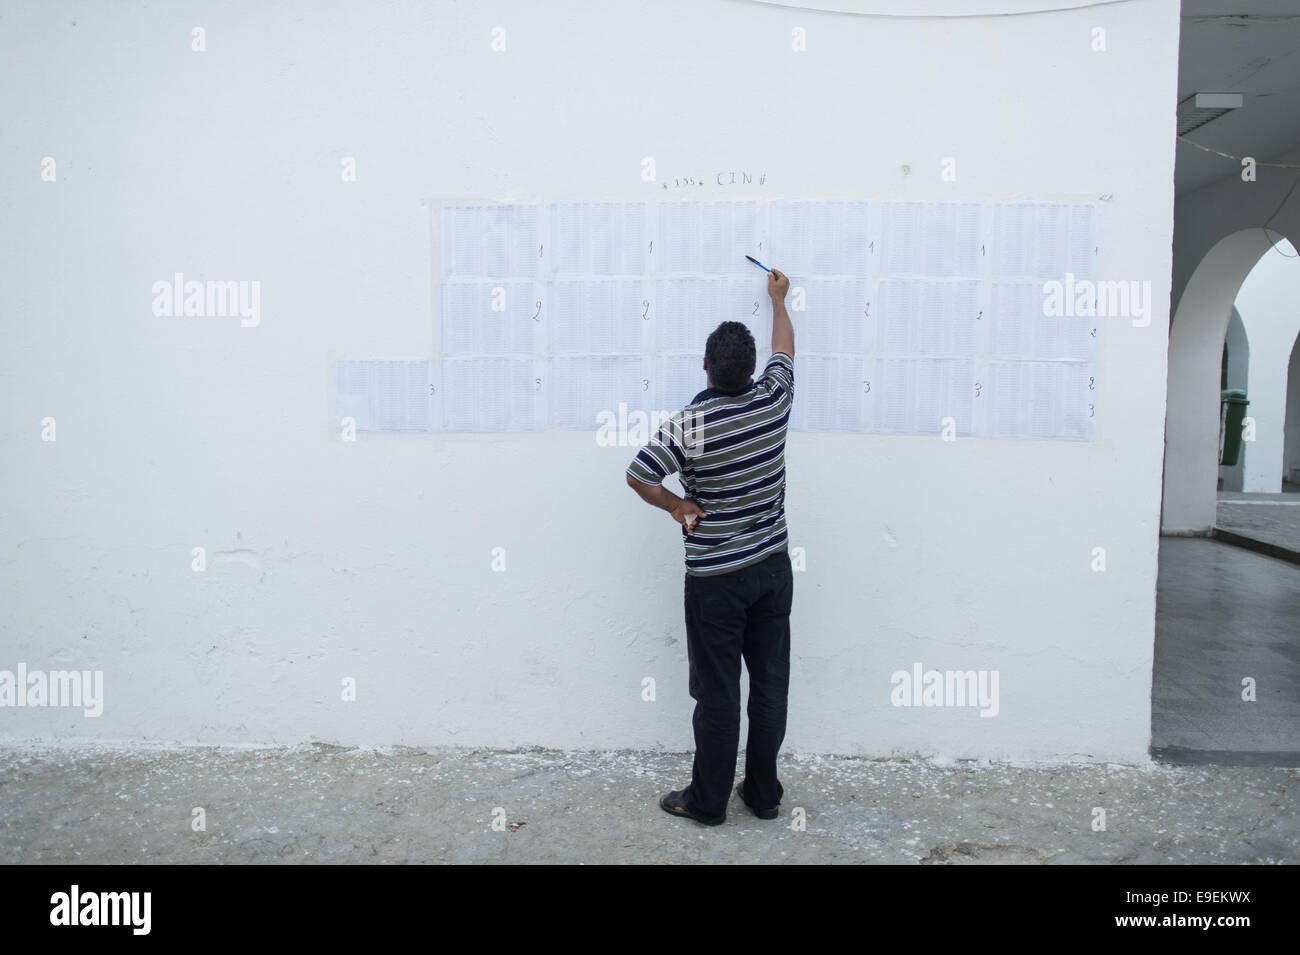 Tunis, Tunisia. 26th Oct, 2014. An Electoral worker checks information at a polling station in Tunis, capital of - Stock Image